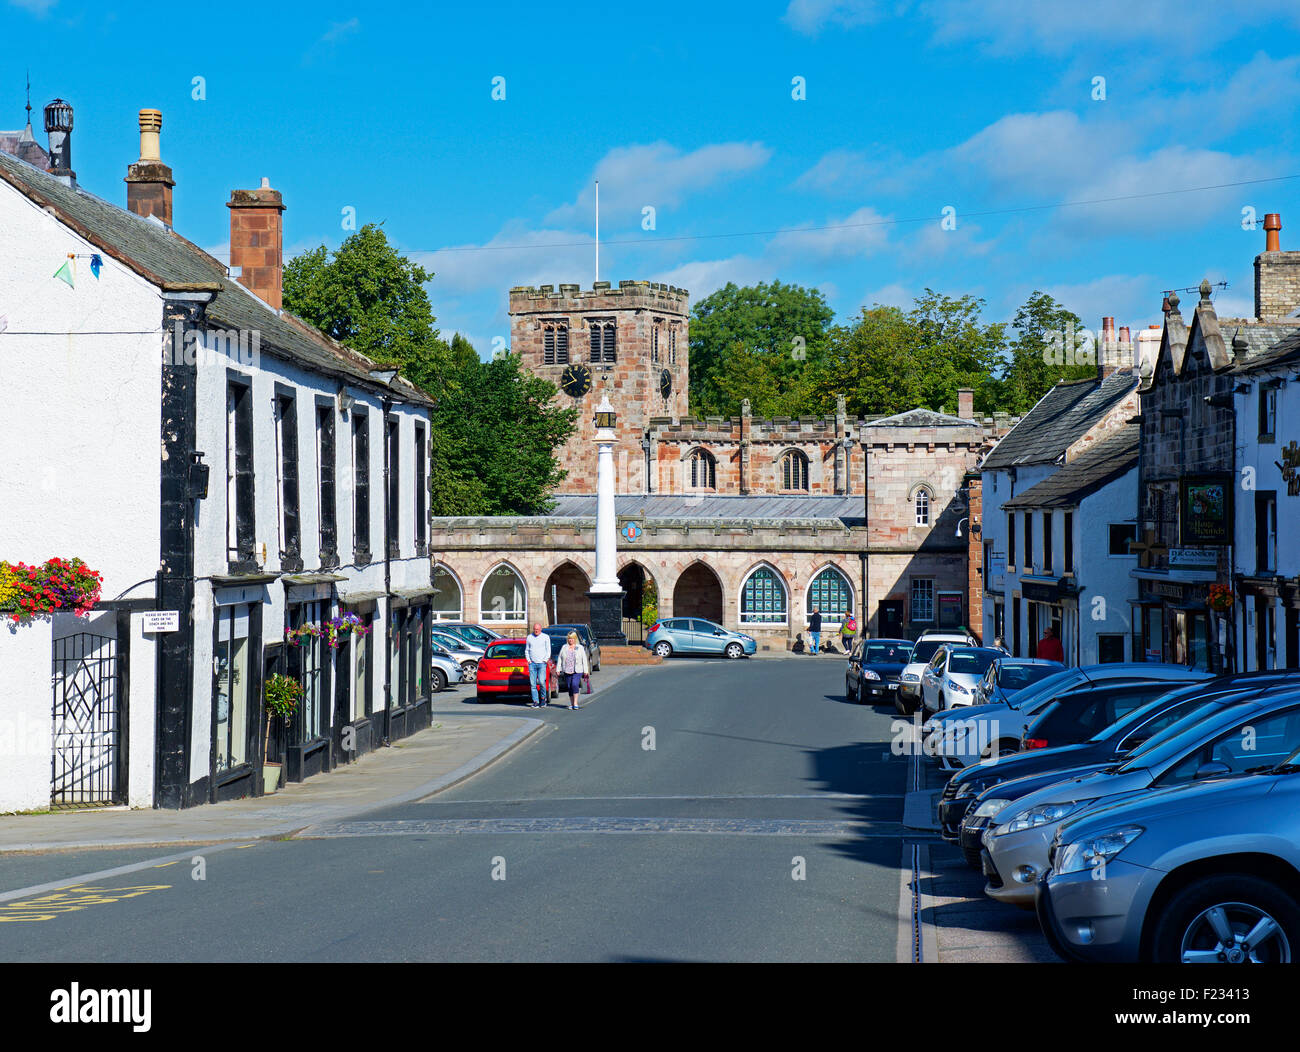 Boroughgate and St Lawrence's Church, Appleby, Cumbria, England - Stock Image